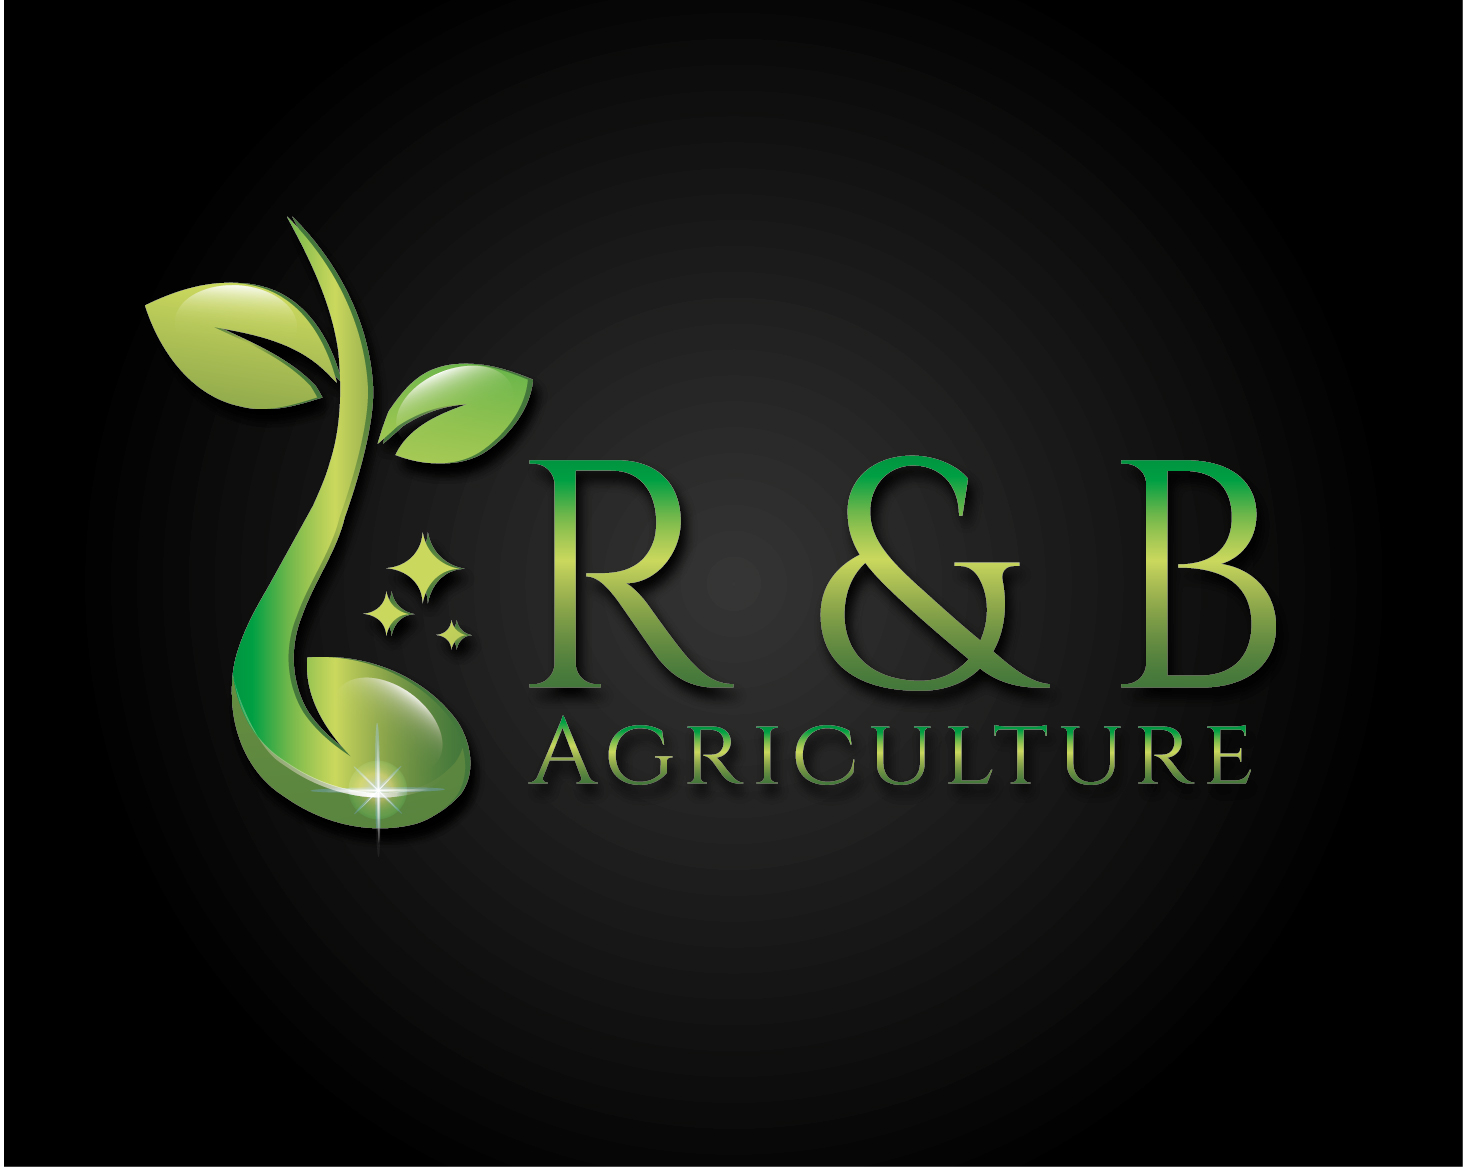 Logo Design by VENTSISLAV KOVACHEV - Entry No. 120 in the Logo Design Contest Captivating Logo Design for R & B Agriculture.